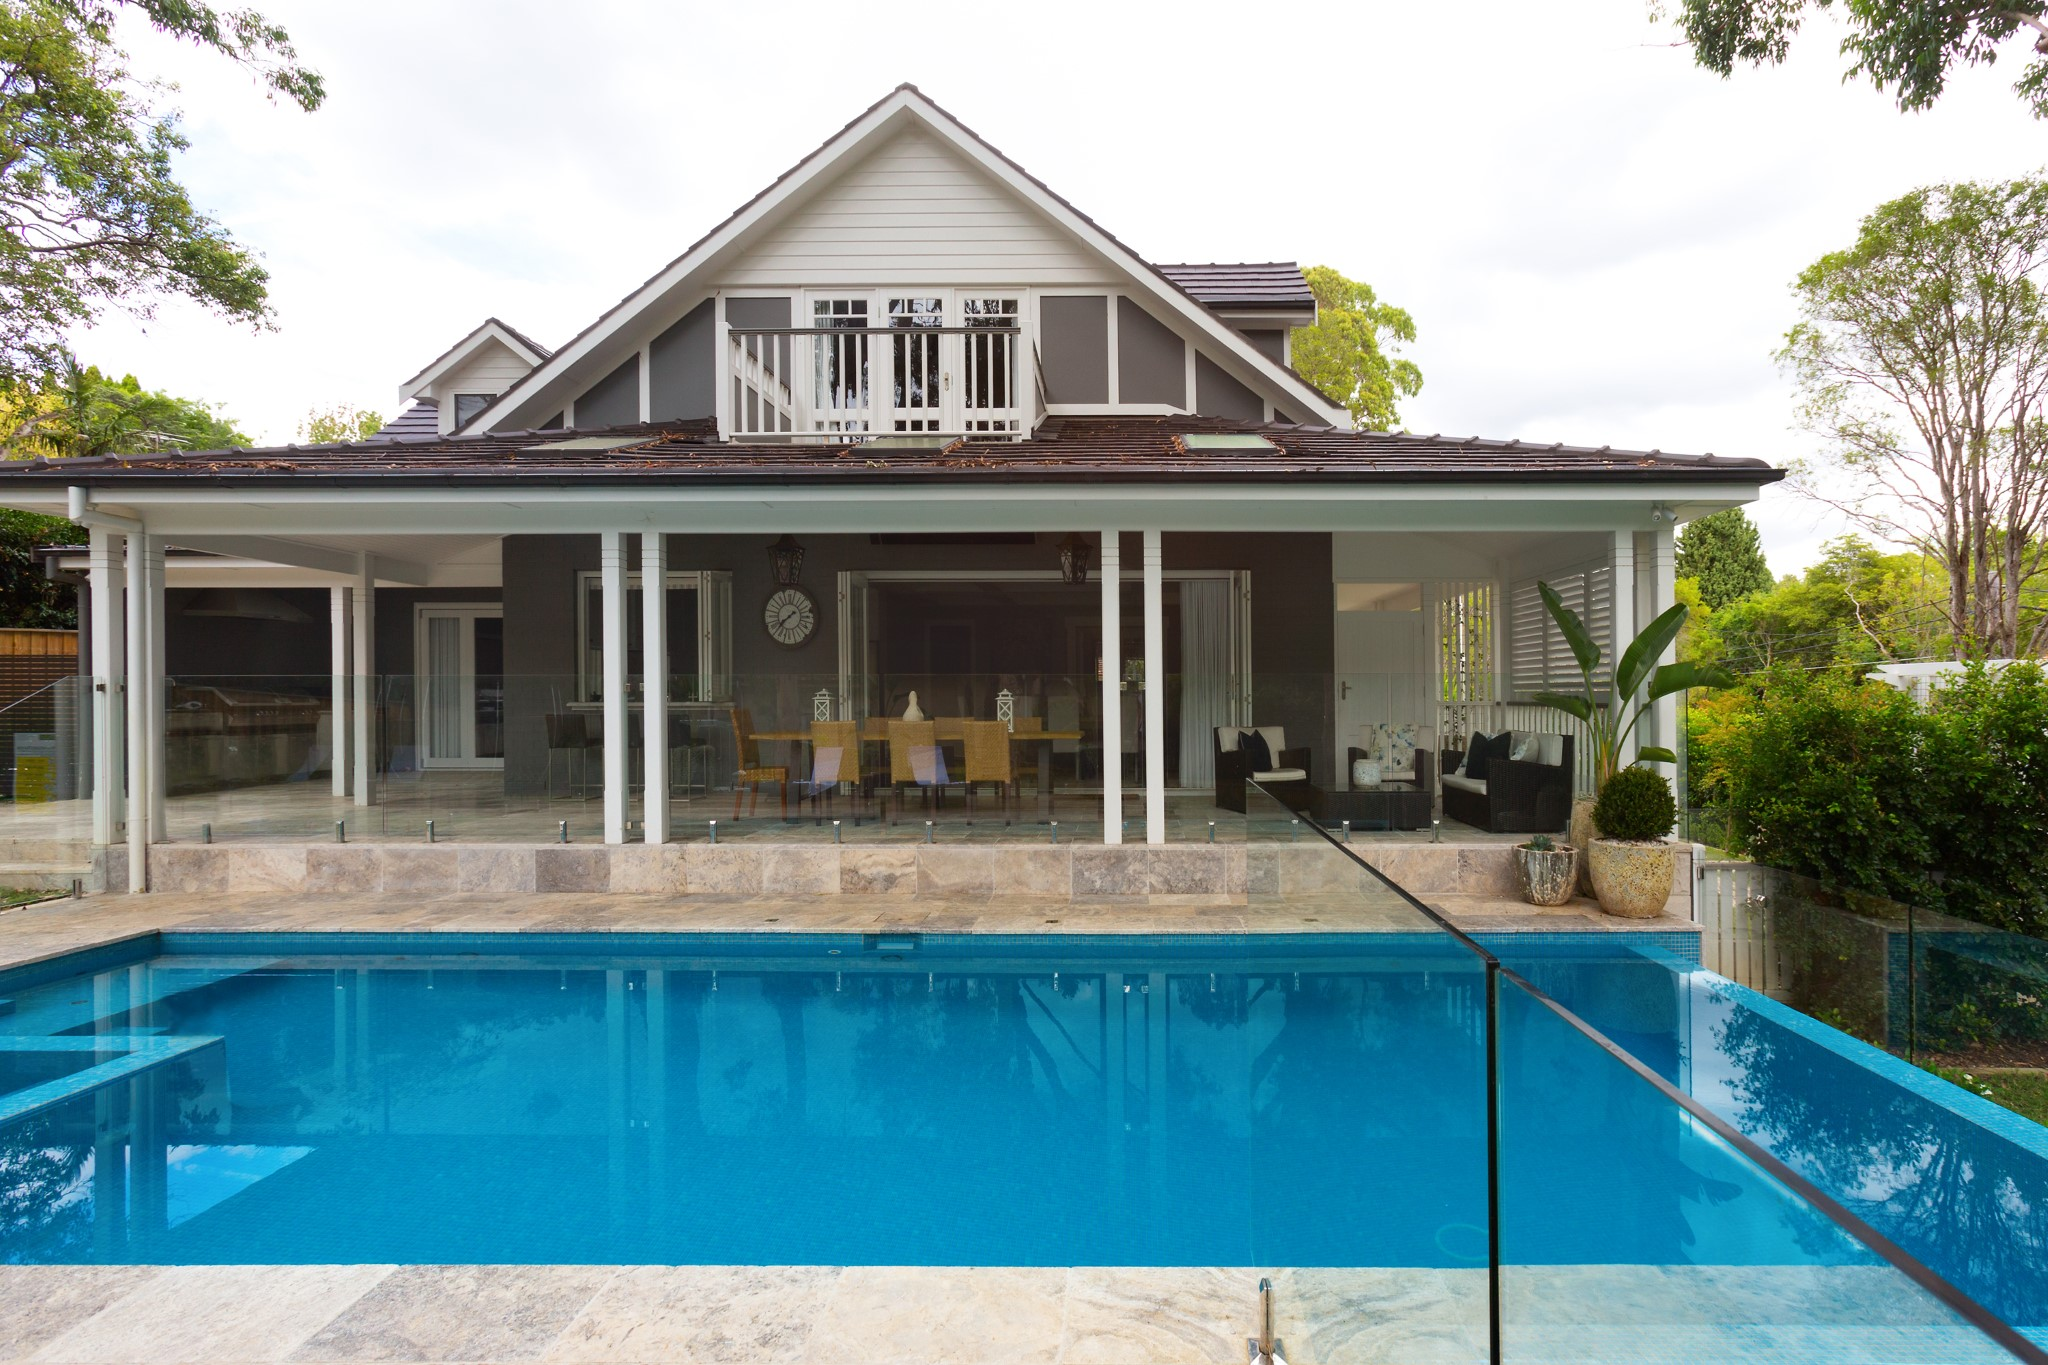 Classic design swimming pool in front of the house